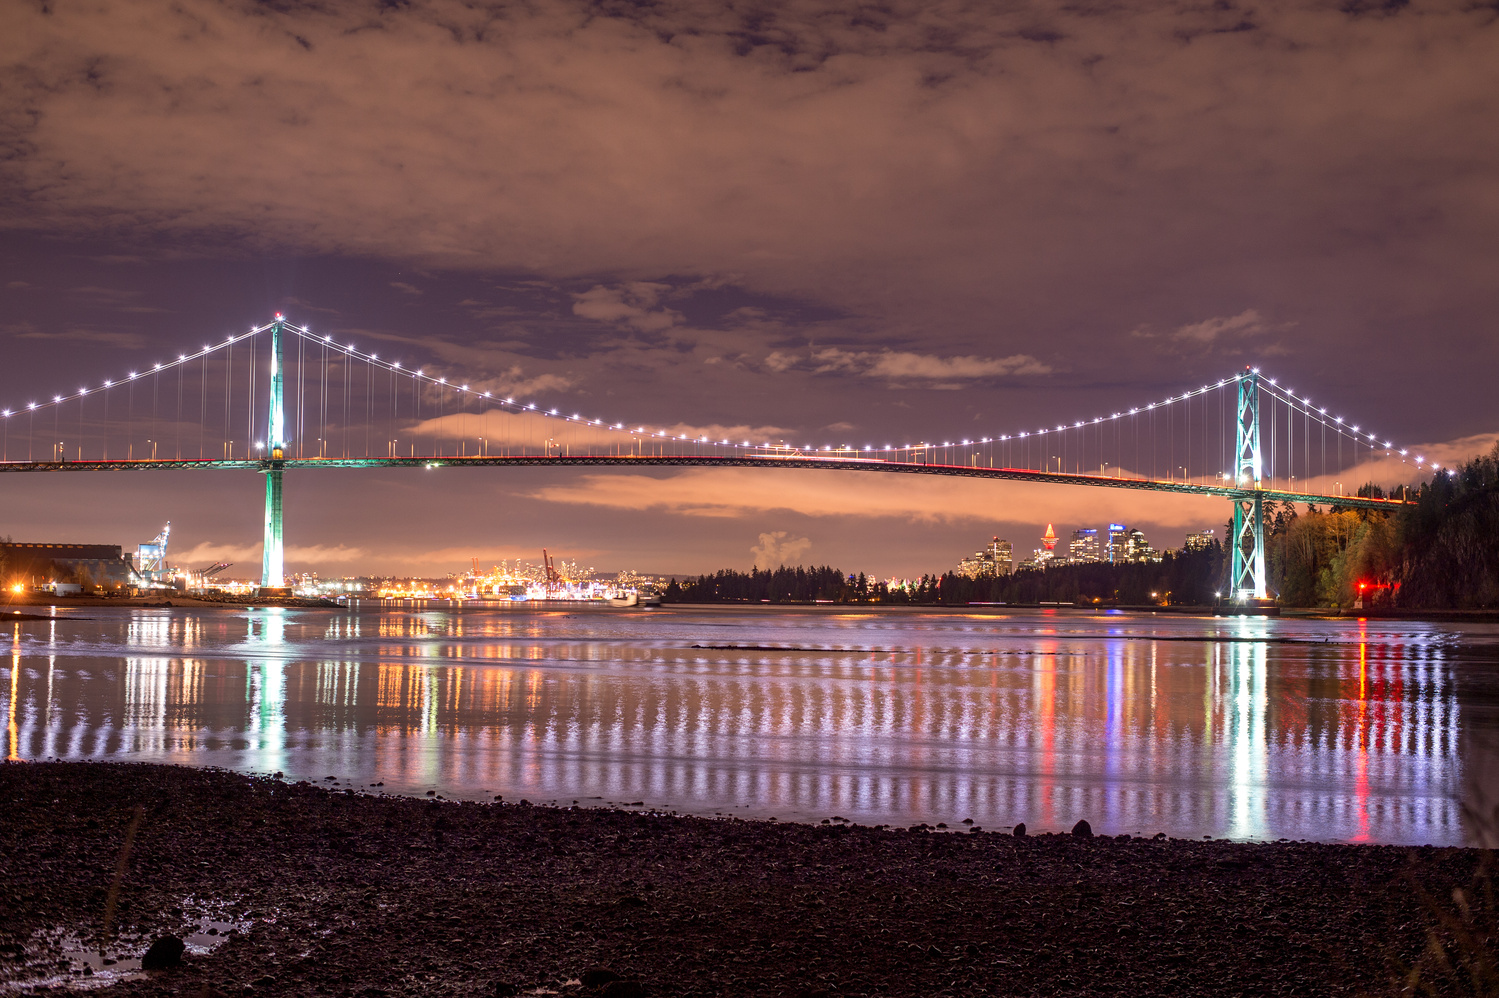 Lions gate Bridge by Pavel Gebrt